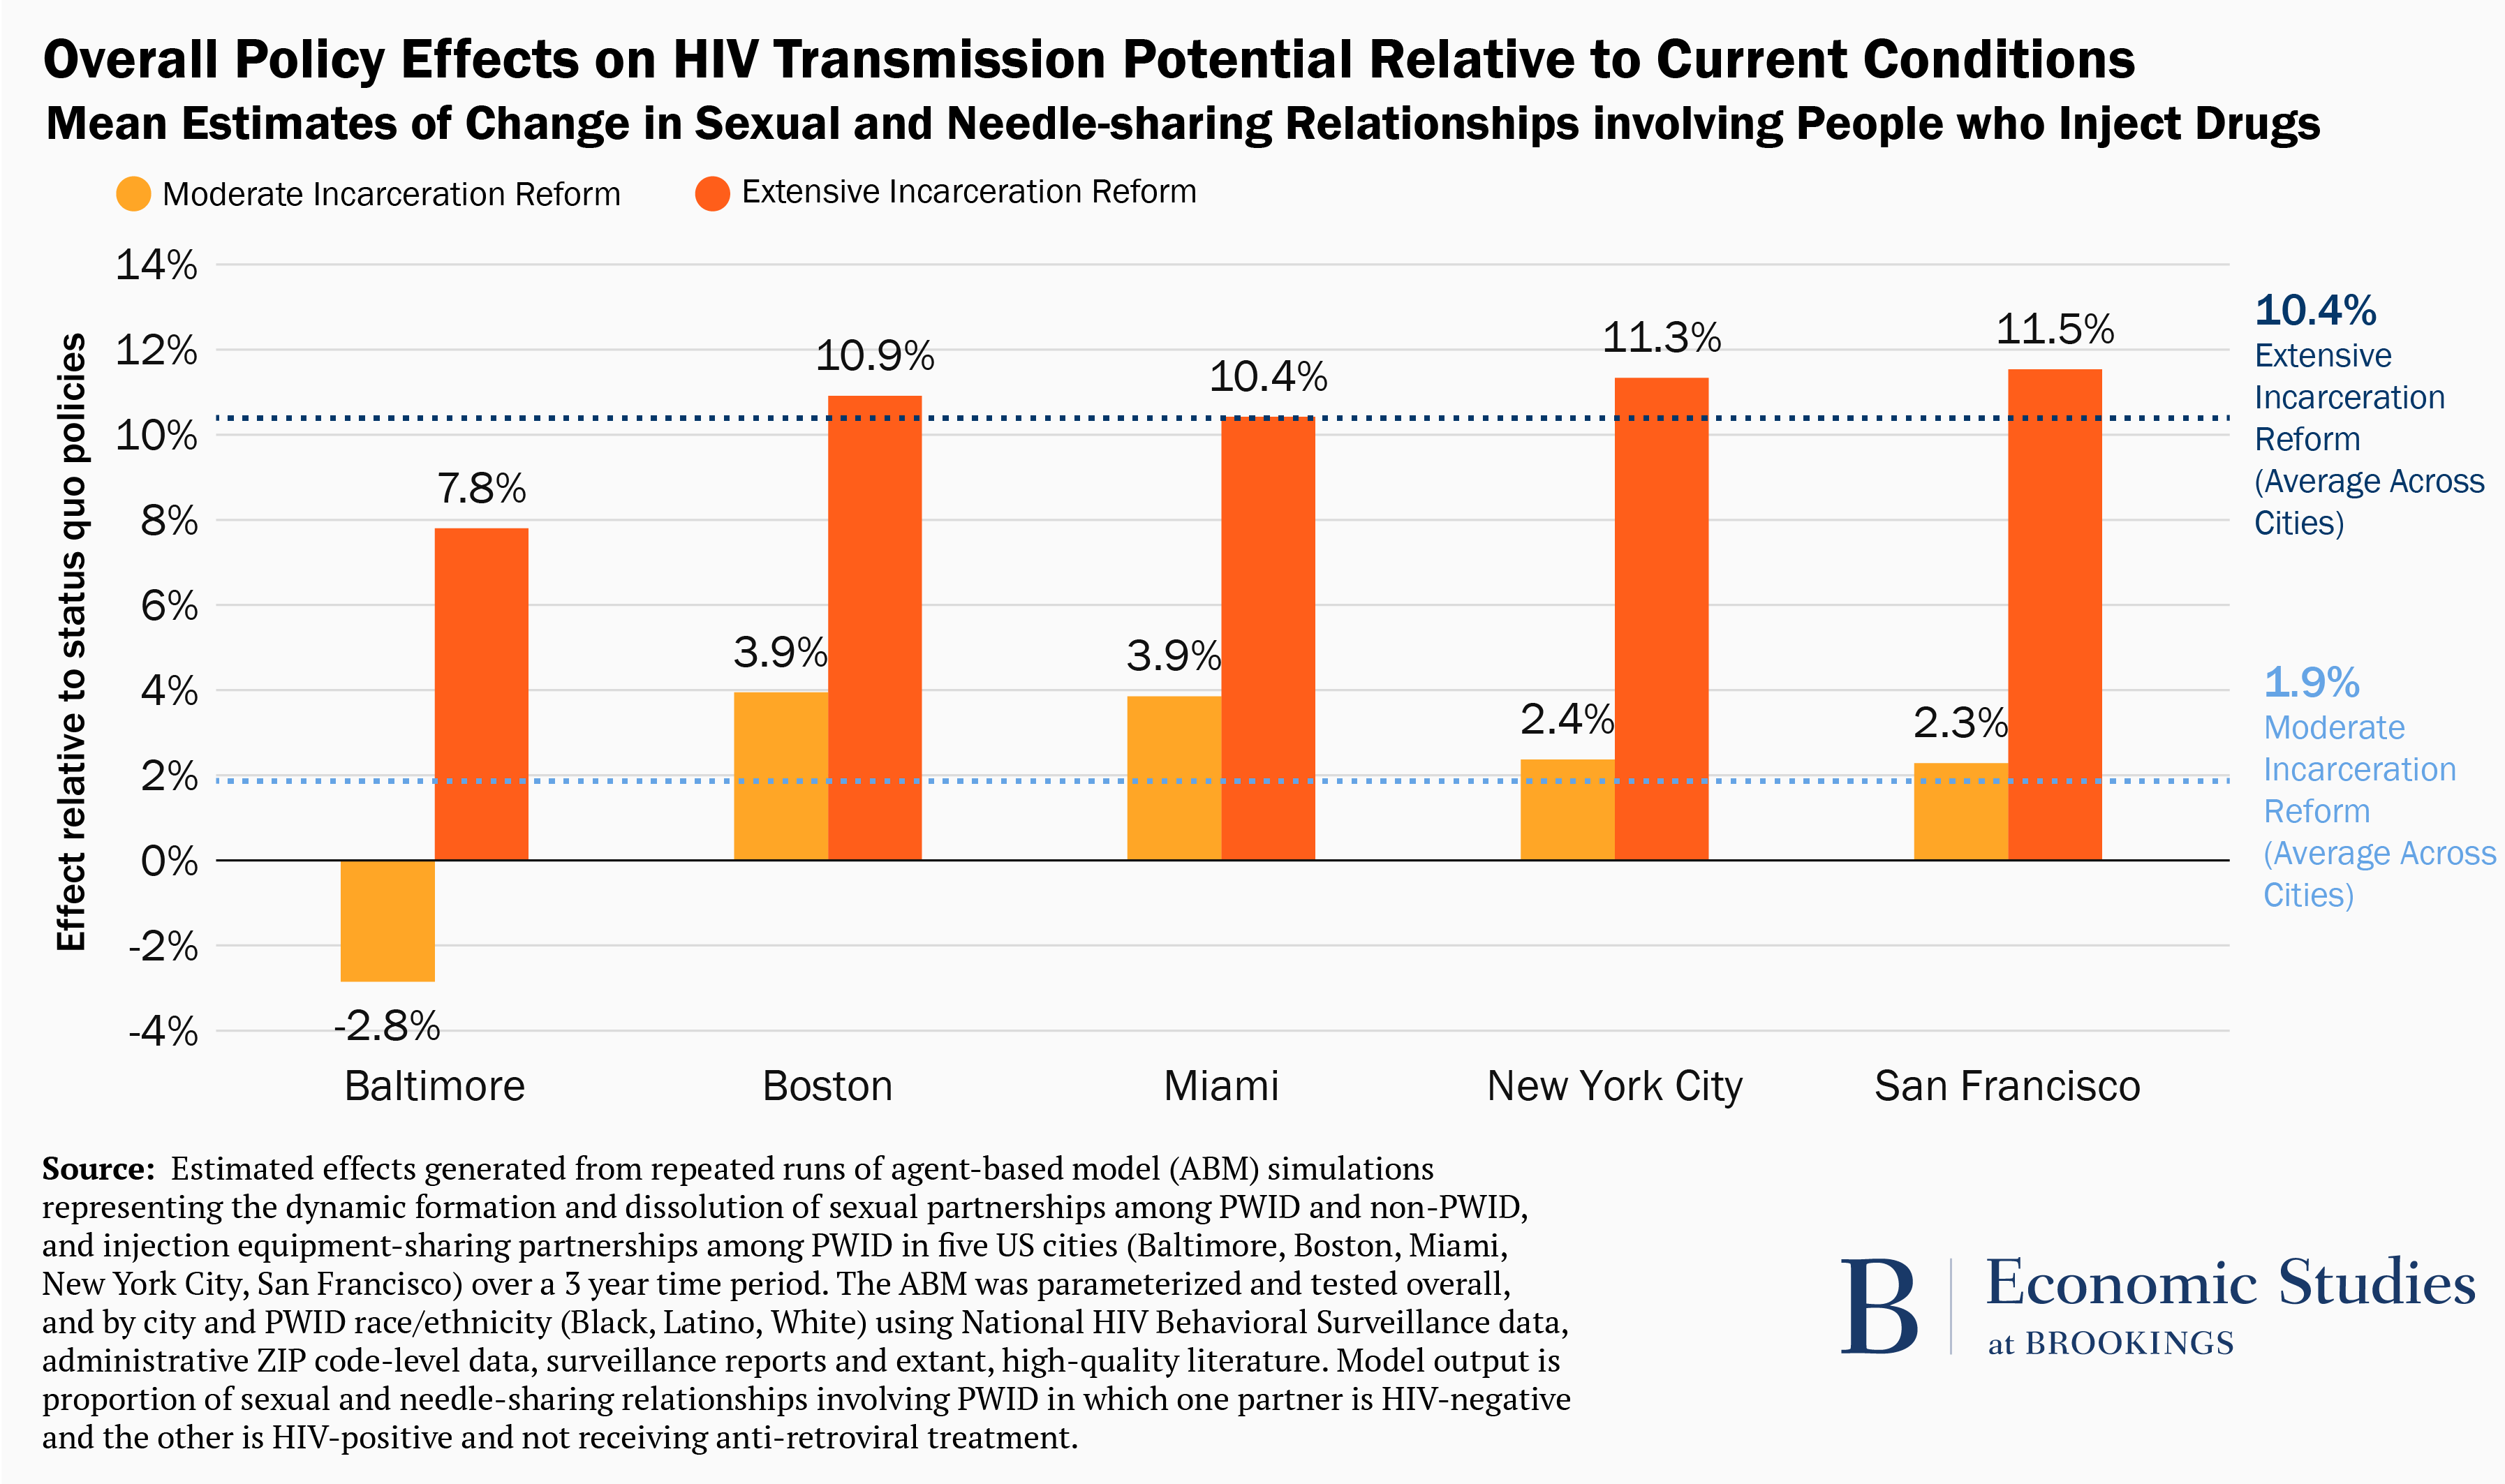 Policy effects on HIV transmission potential relative to current conditions.